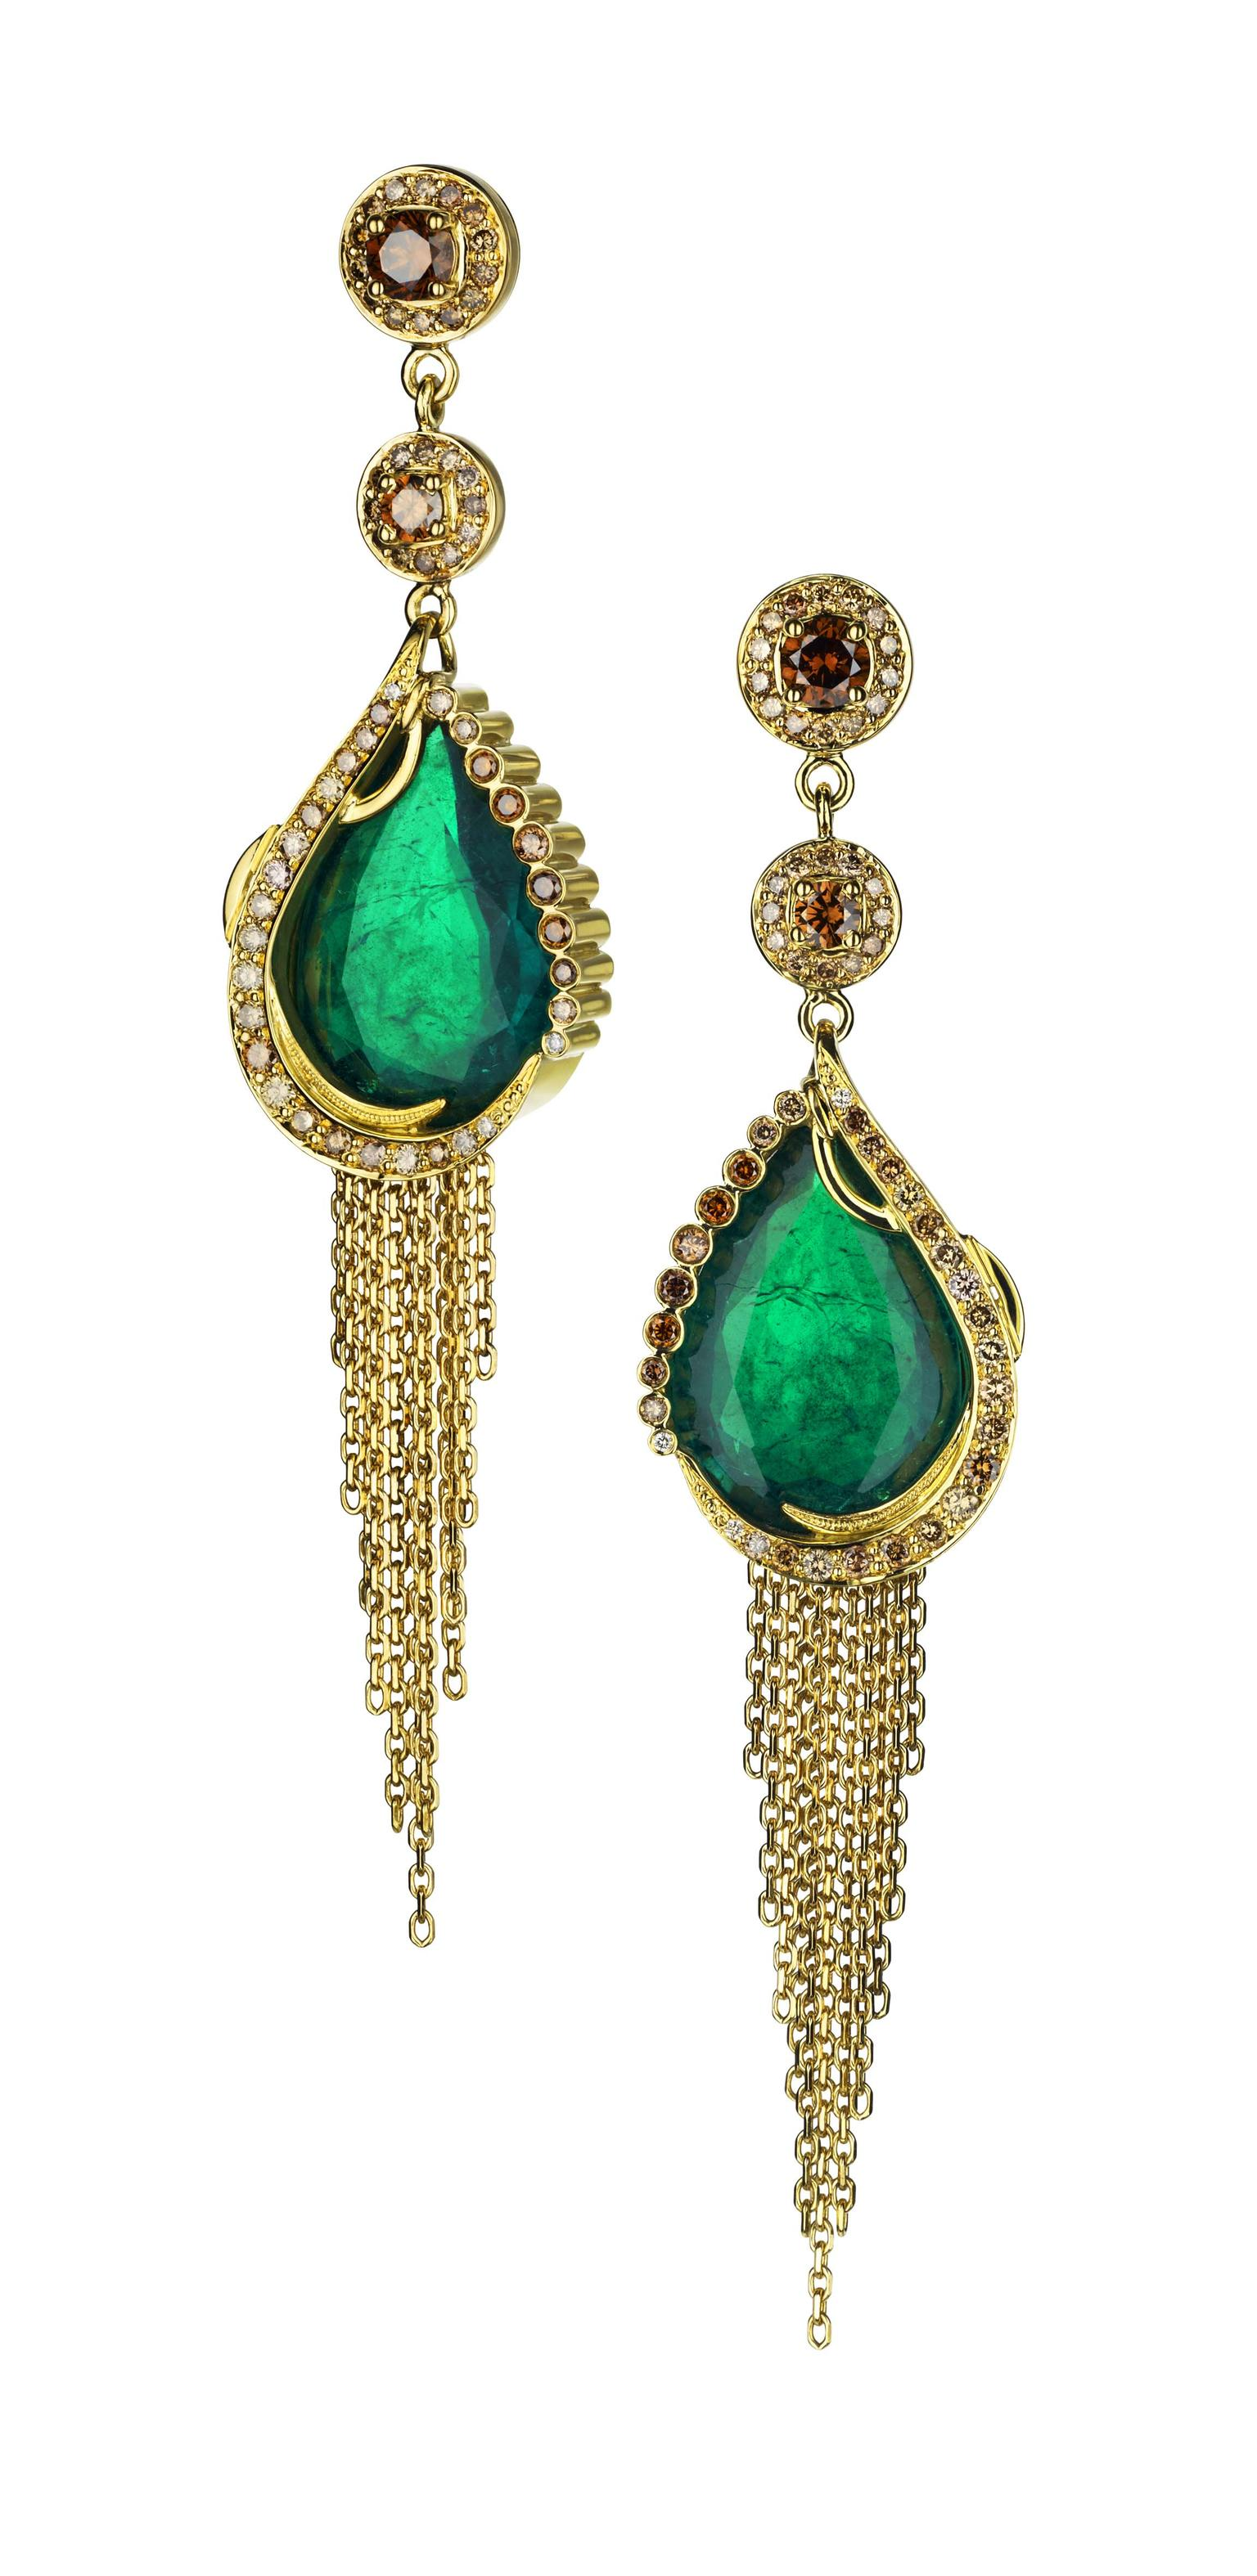 Ana de Costa earrings in yellow gold featuring a matching pair of Gemfields Zambian cabochon emeralds and pavé set with natural cognac diamonds.